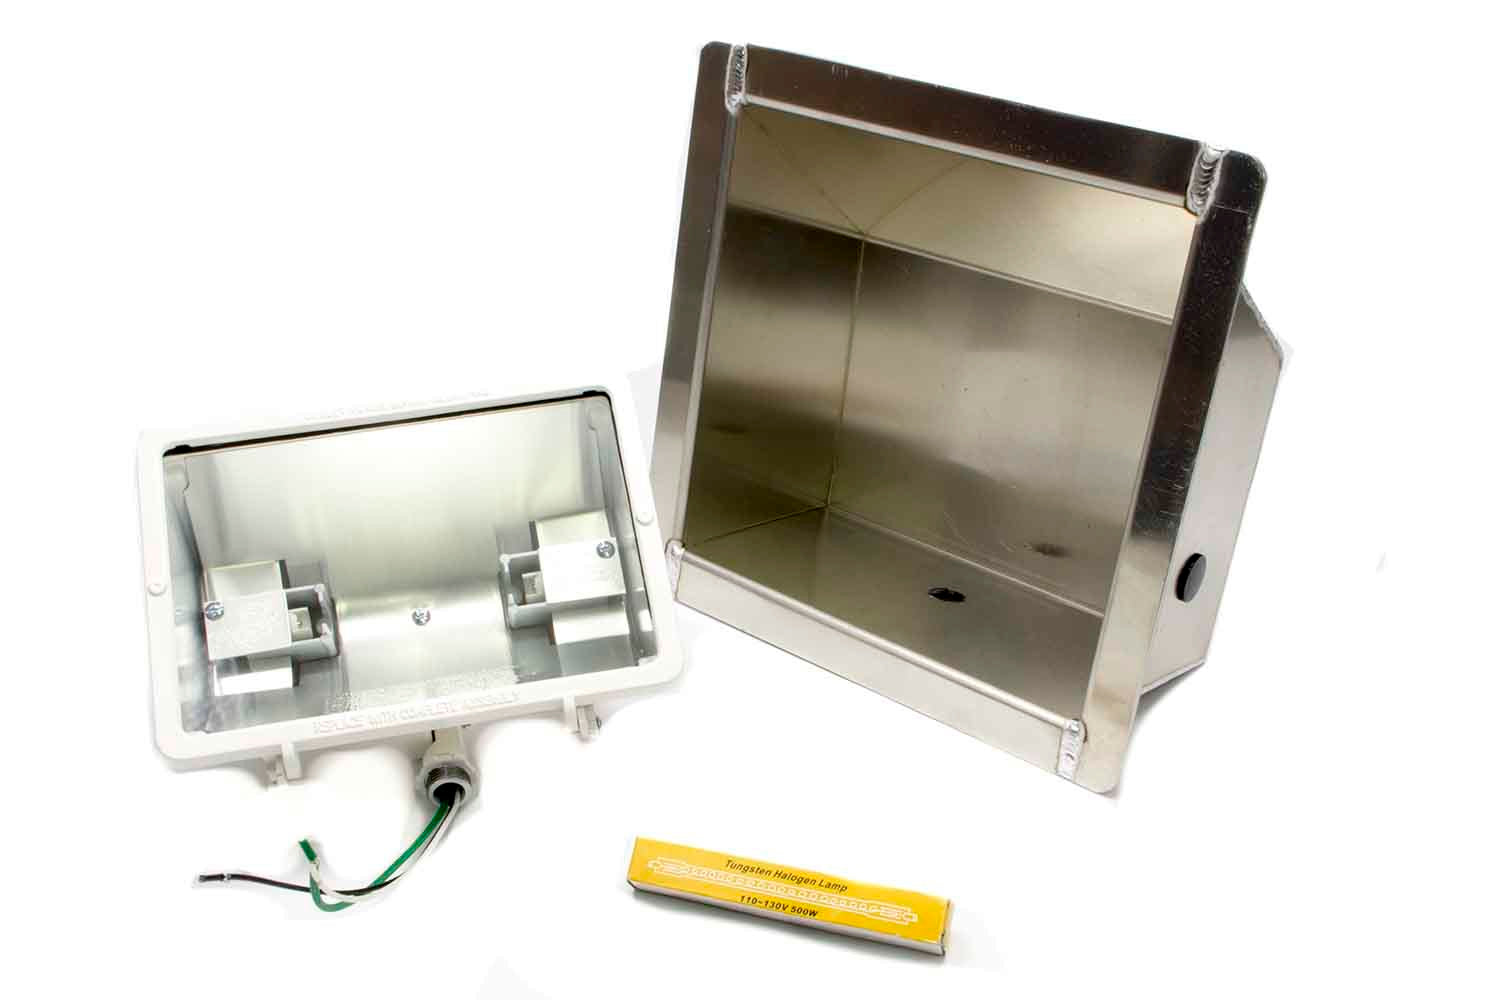 Trailer Light Recessed Bucket 500w Halogen